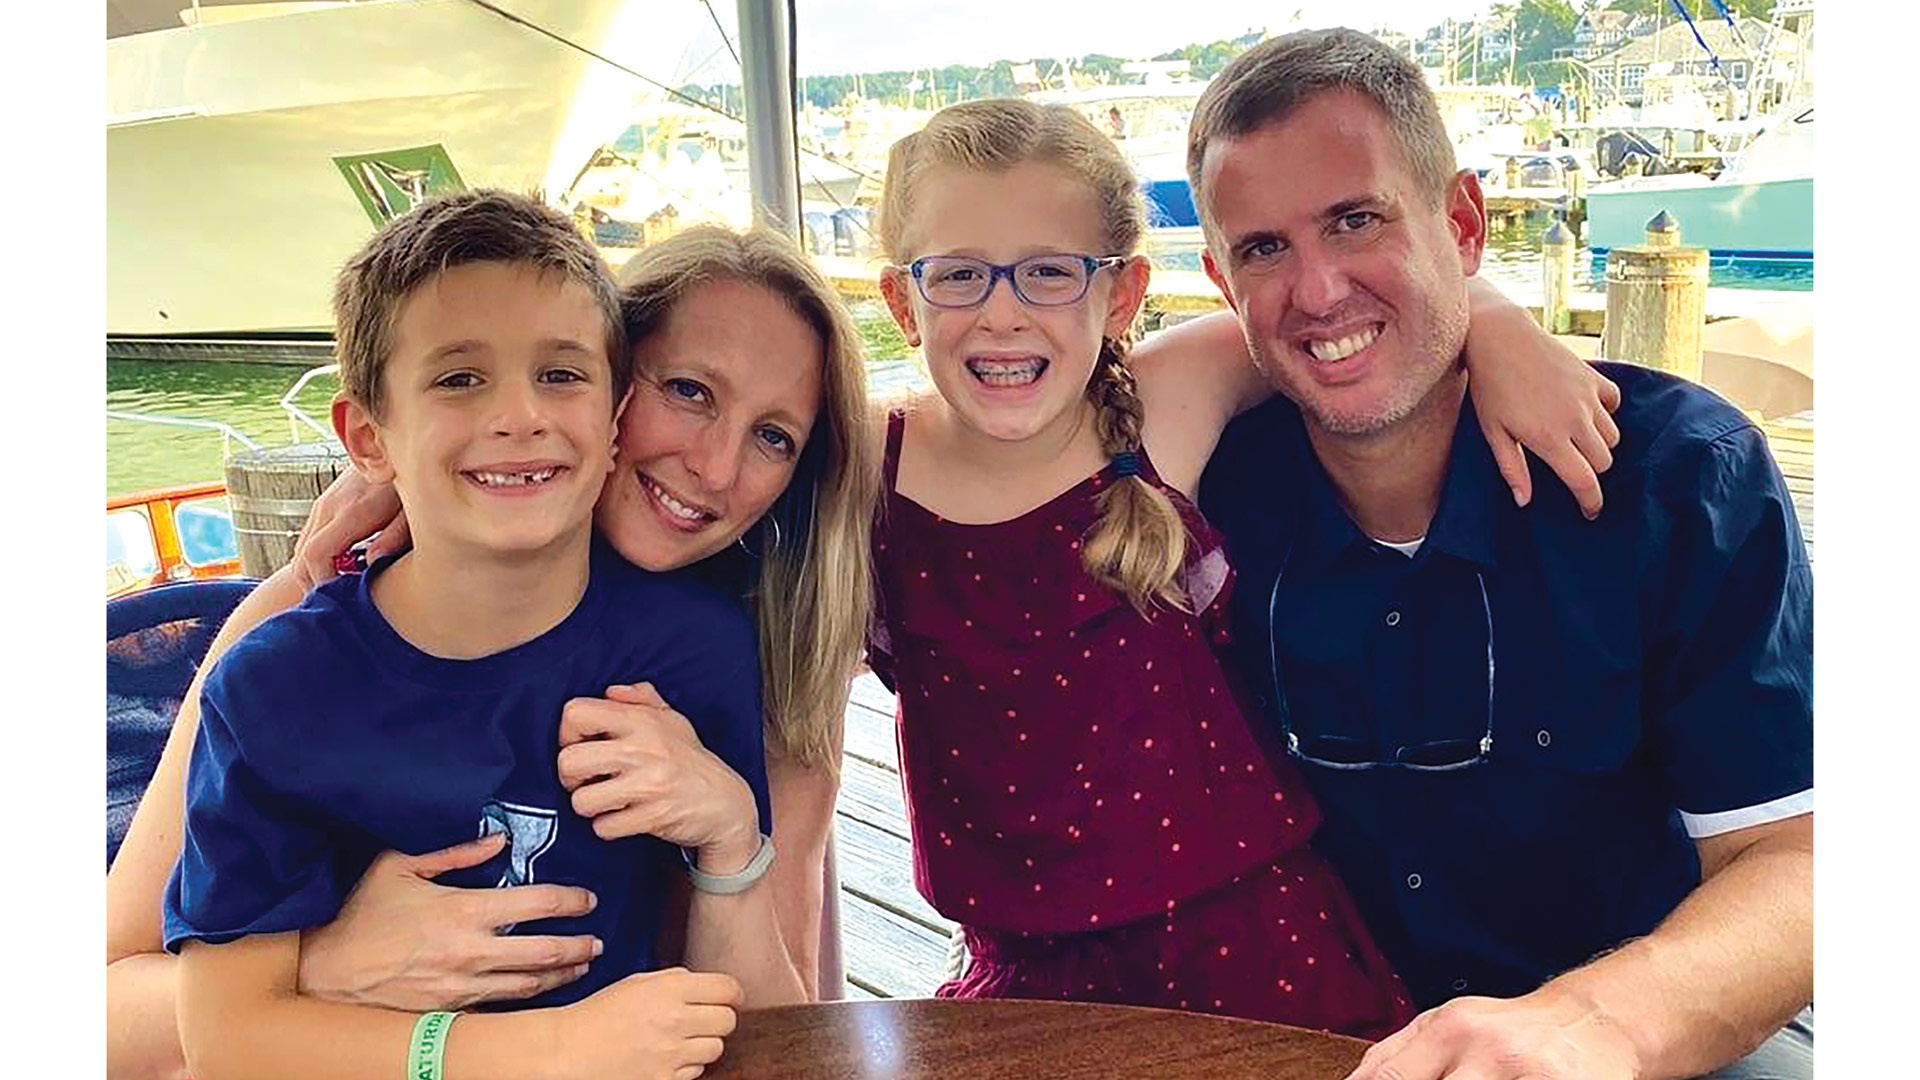 Dr. Louis DeCaro, seen here with his children, Eliza and Lucas, and wife Jamie, says foot issues impact people of all ages, starting with the very young.